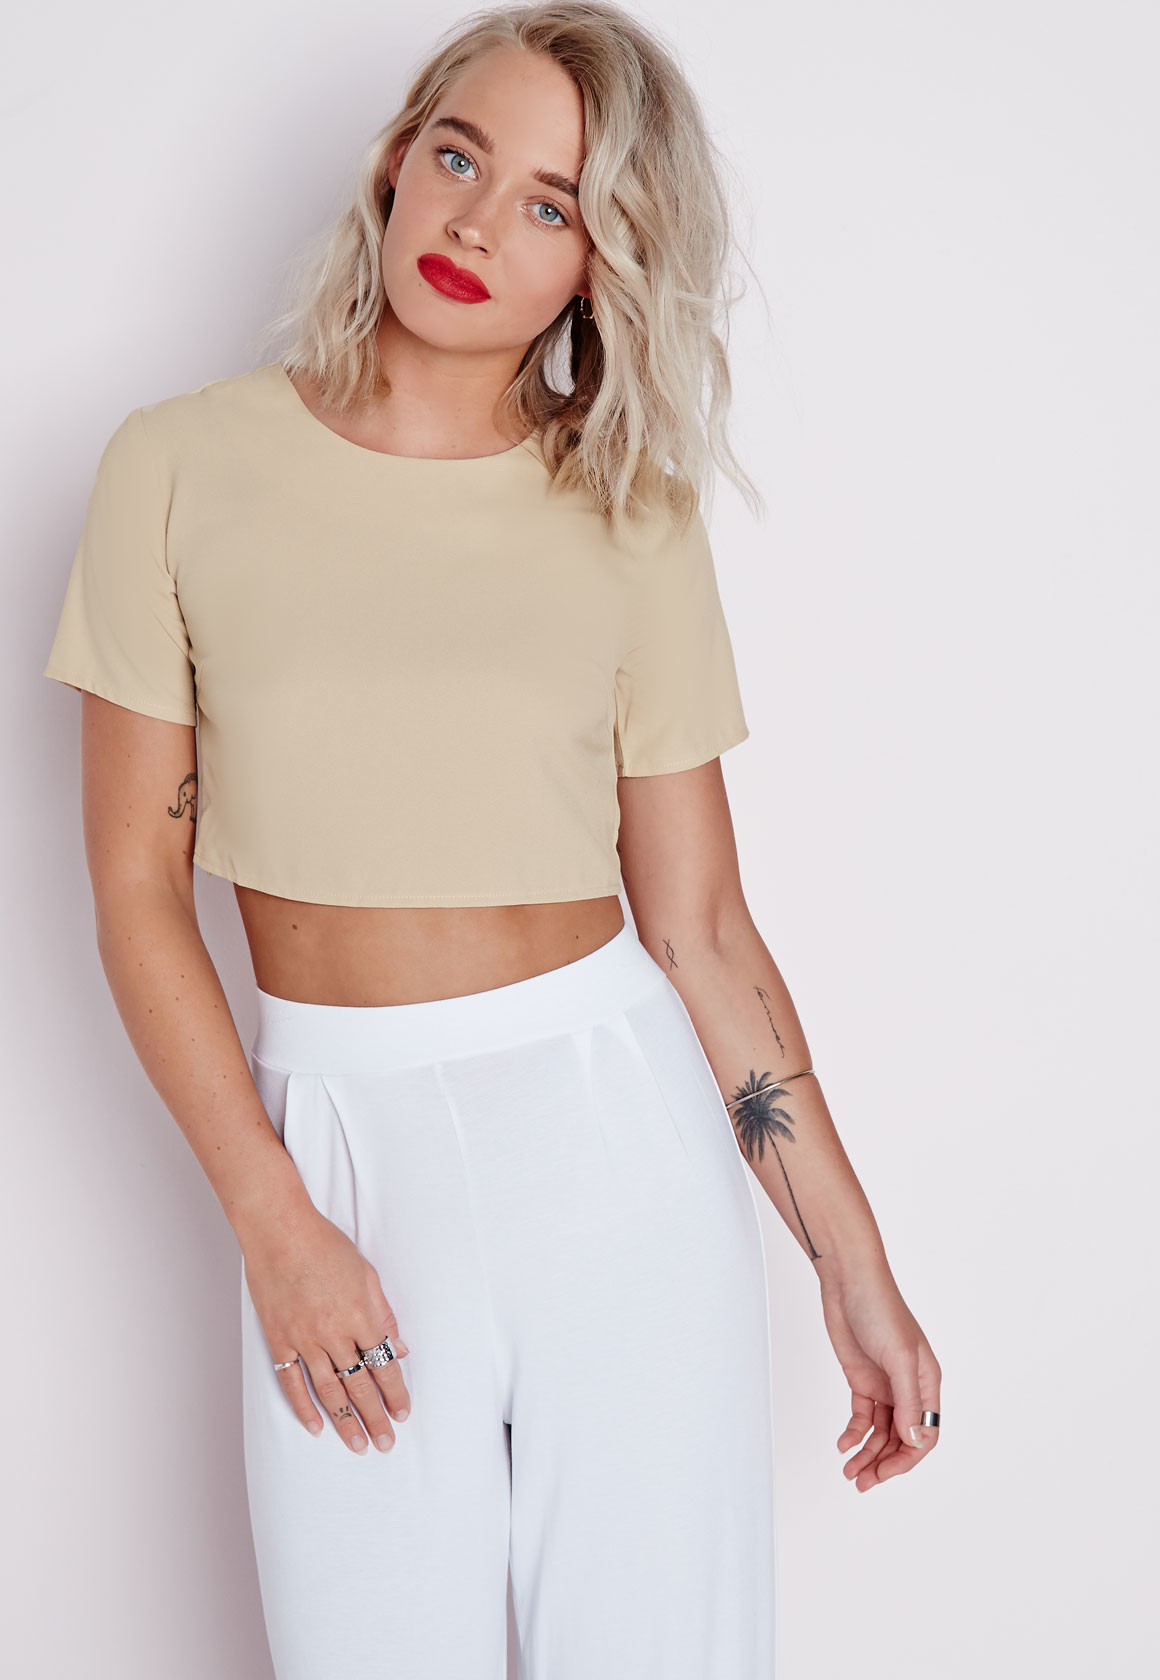 745be28d4ccb7 Missguided Capped Sleeve Crop Top Taupe in Natural - Lyst